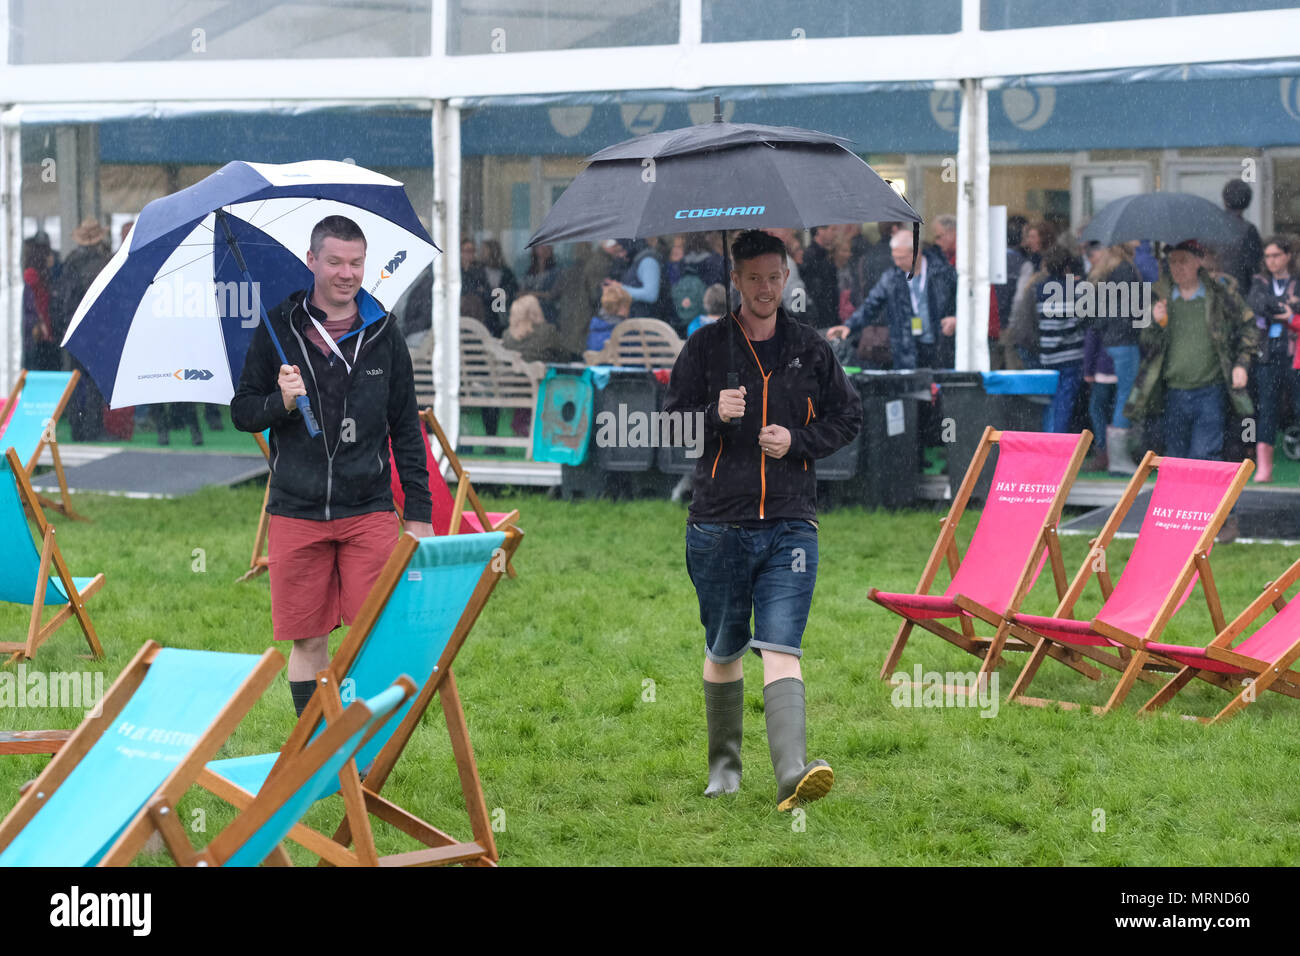 Hay Festival, Hay on Wye, UK - May 2018 - Brolly weather at the Hay Festival in Powys, Wales as visitors dodge heavy showers between events by leading authors, actors and thinkers - Photo Steven May / Alamy Live News - Stock Image